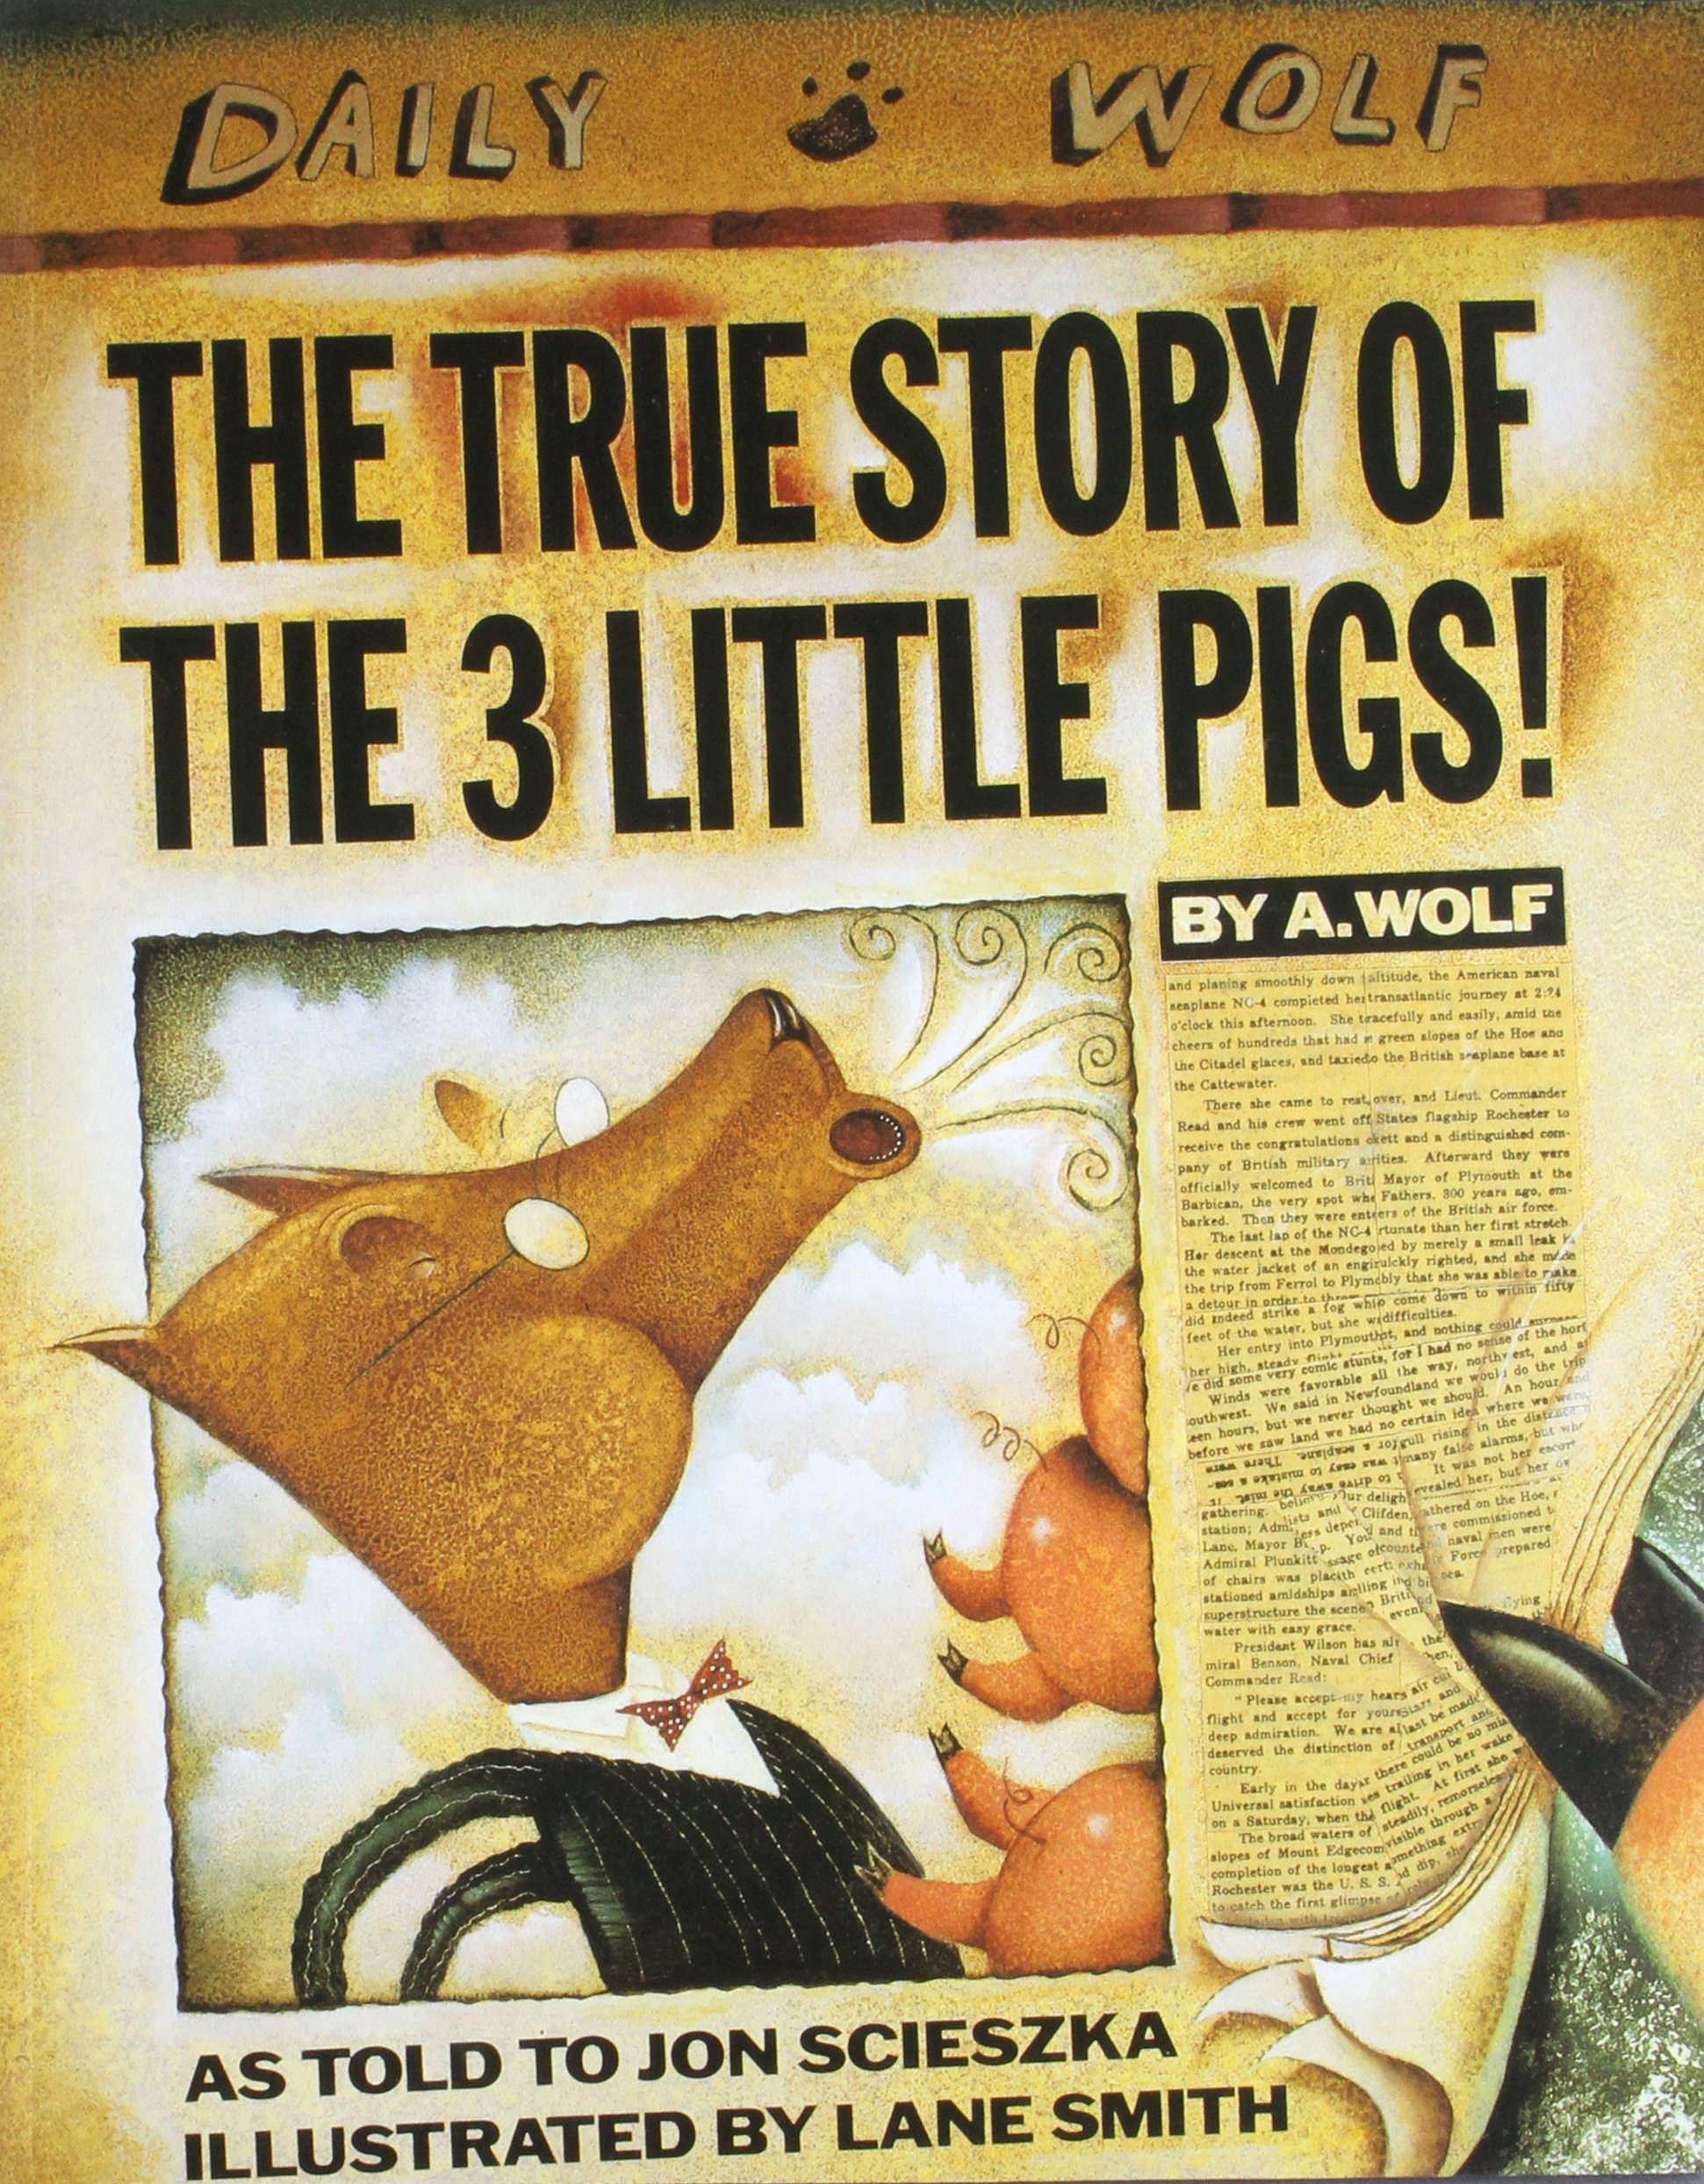 The True Story of the Three Little Pigs (1989) by Jon Scieszka